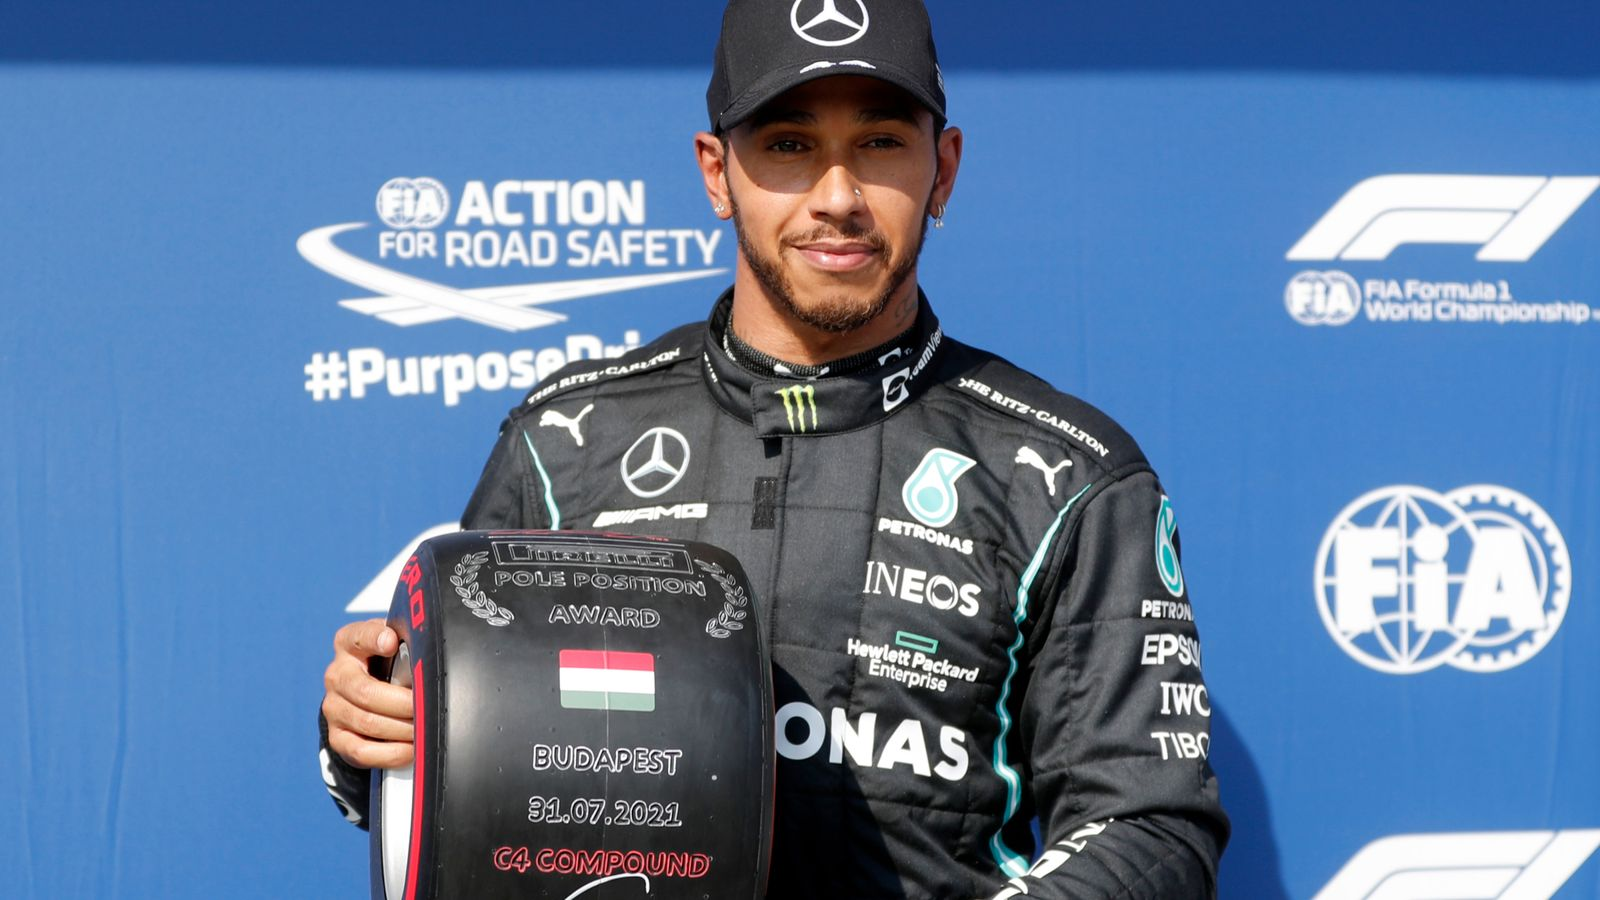 Lewis Hamilton shrugs off boos at Hungarian GP after claiming pole position in first race since Silverstone controversy